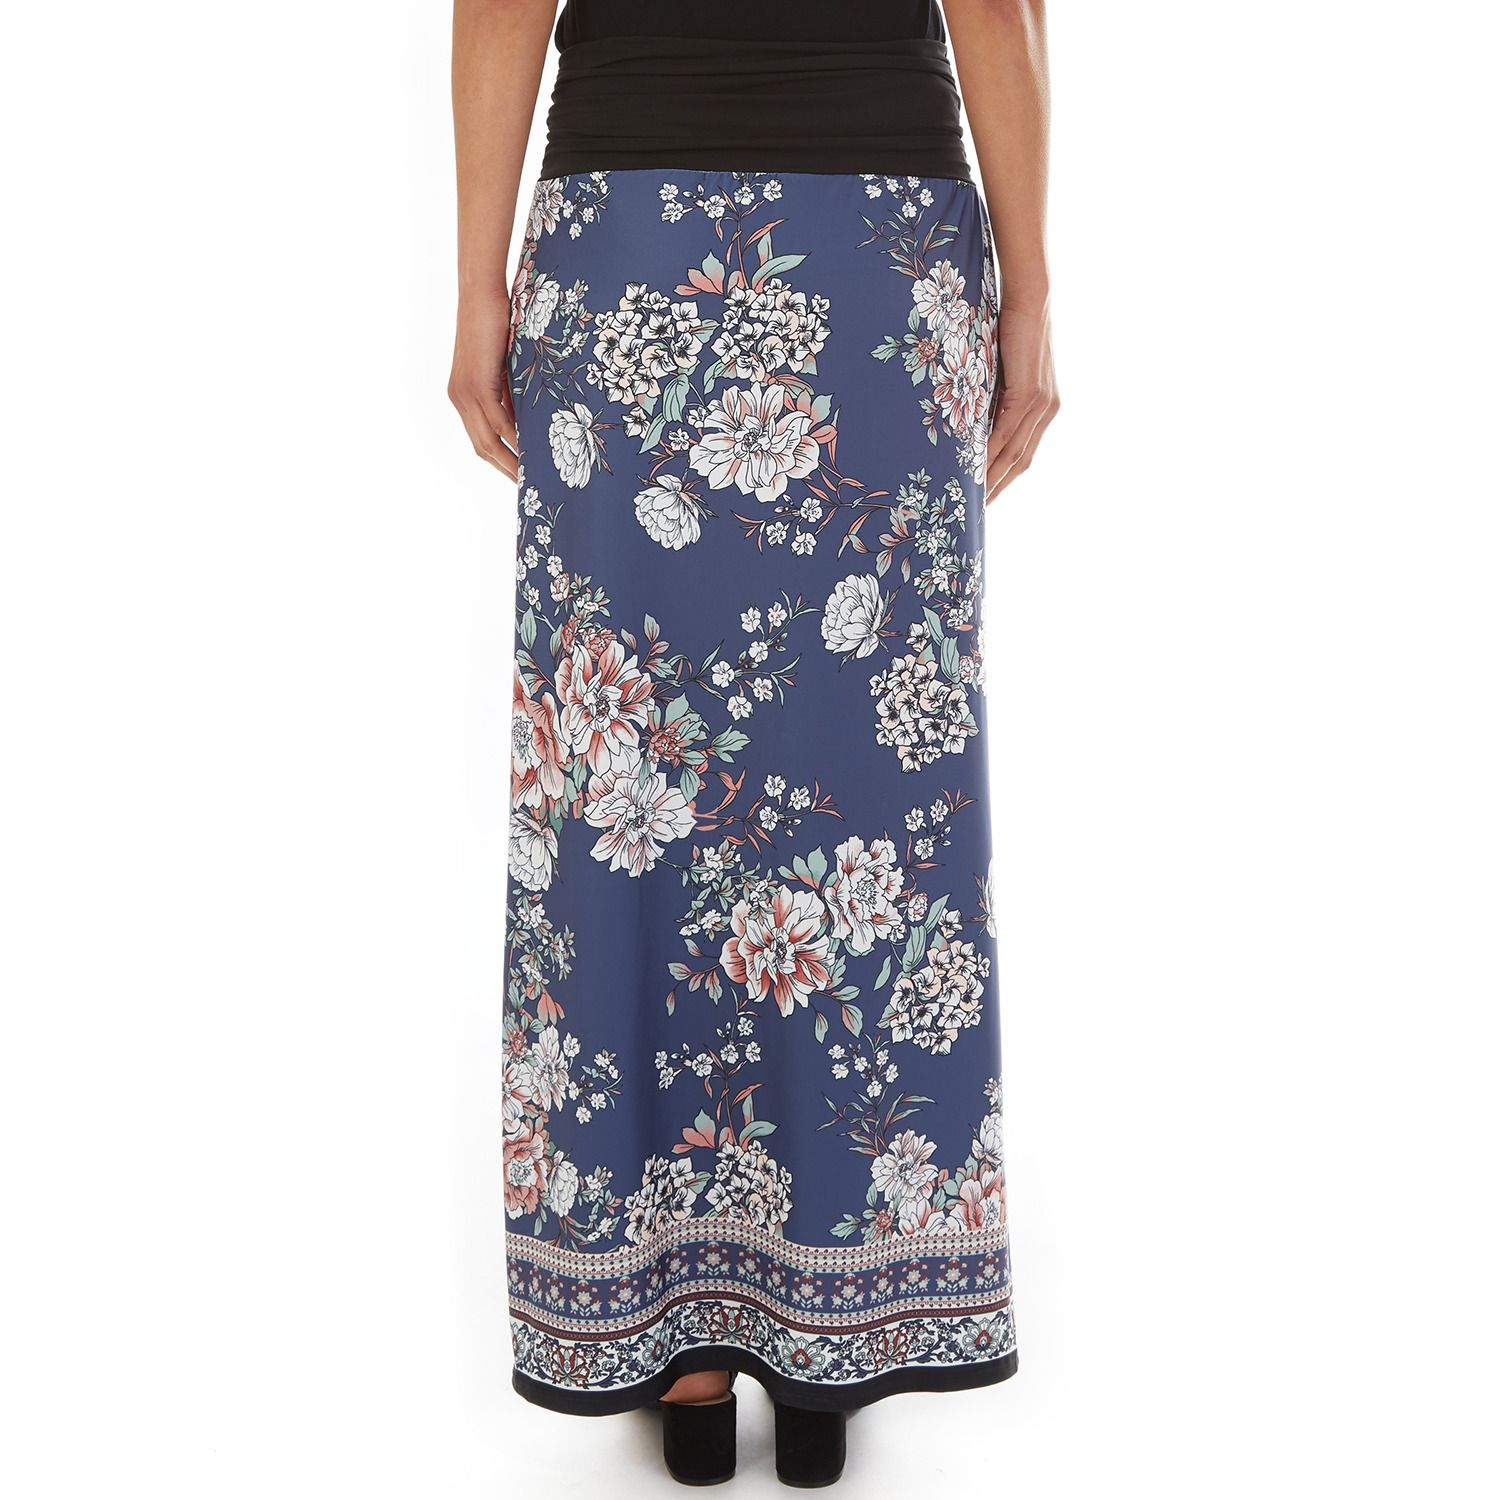 80f0e035c68 Womens Apt. 9 Maxi Skirts   Skorts - Bottoms